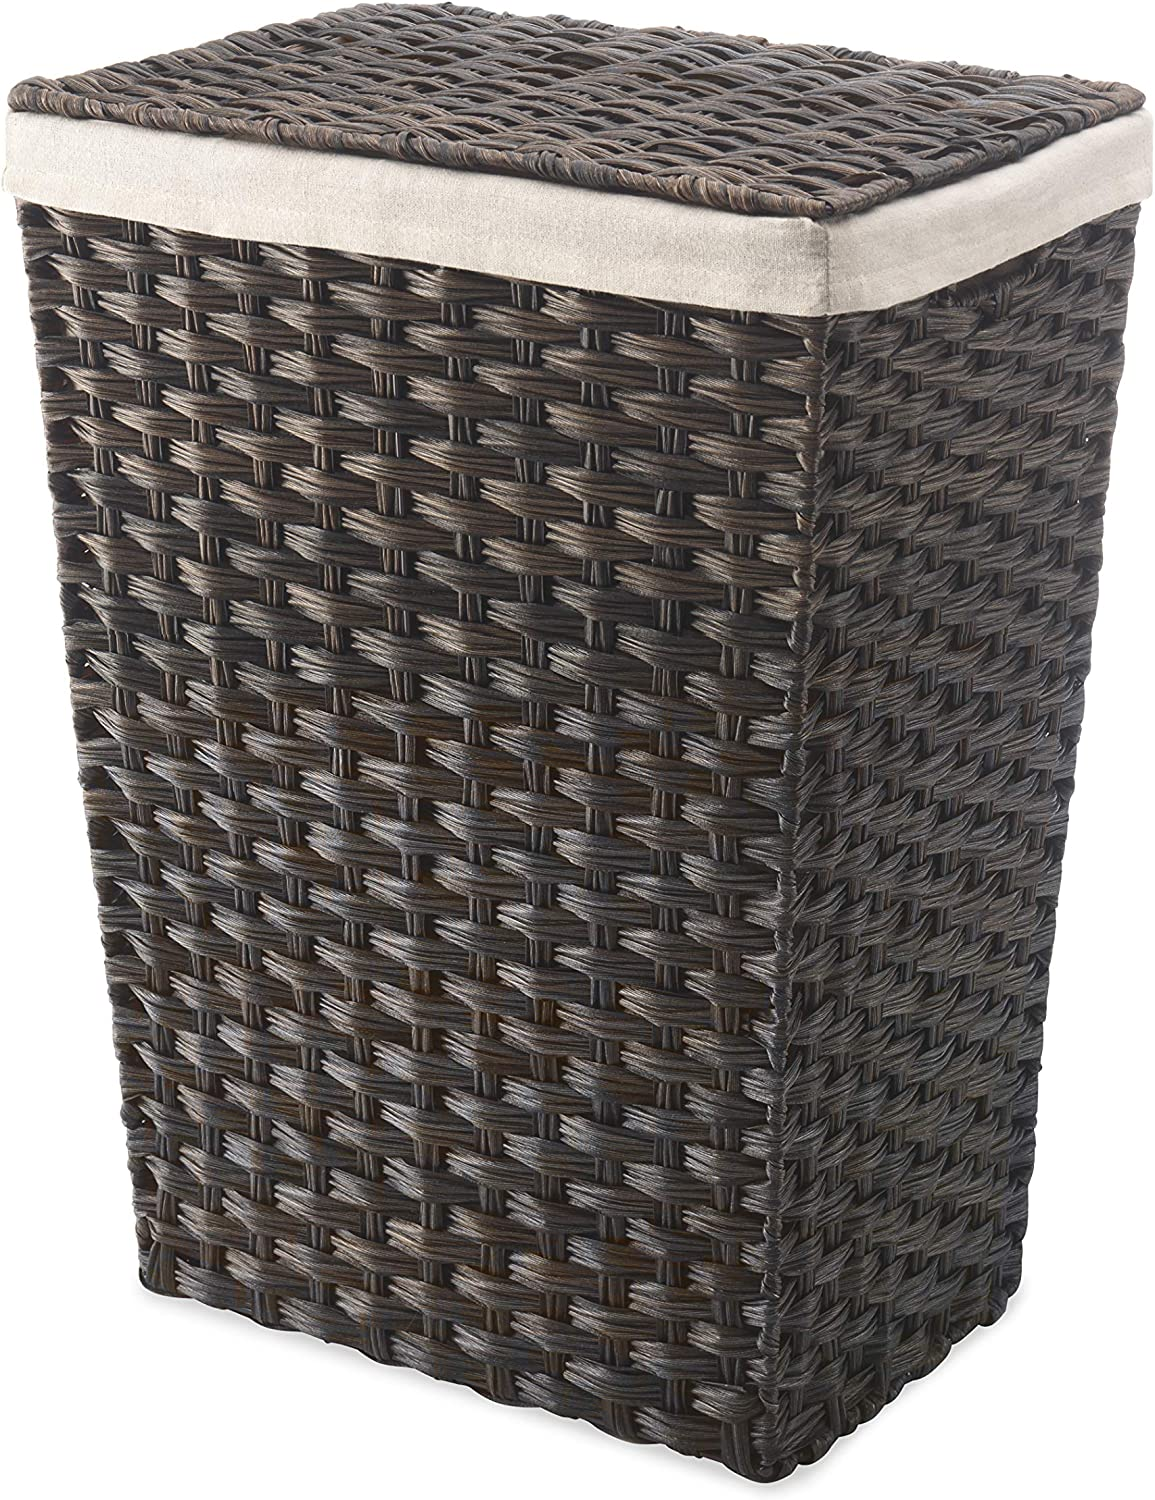 Amazon Com Whitmor Rattique Laundry Hamper With Lid And Removable Liner Espresso Home Kitchen